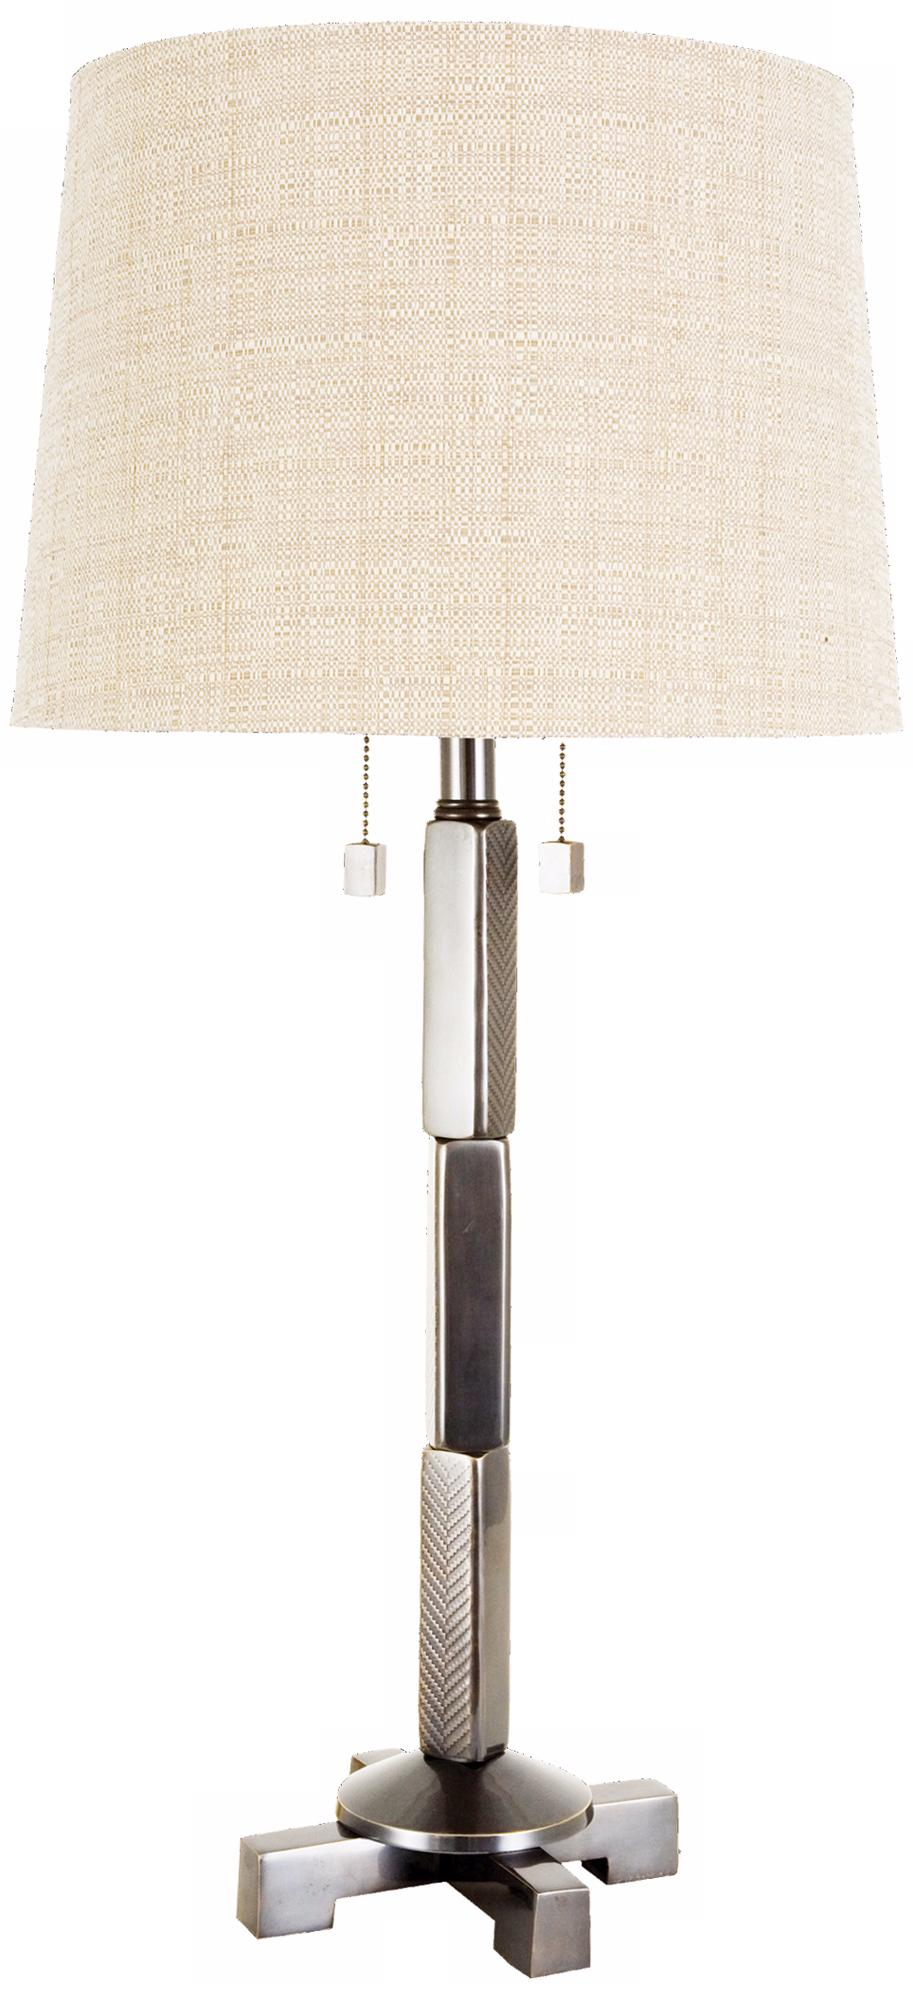 Frederick Cooper Artemis II Table Lamp (N8287)